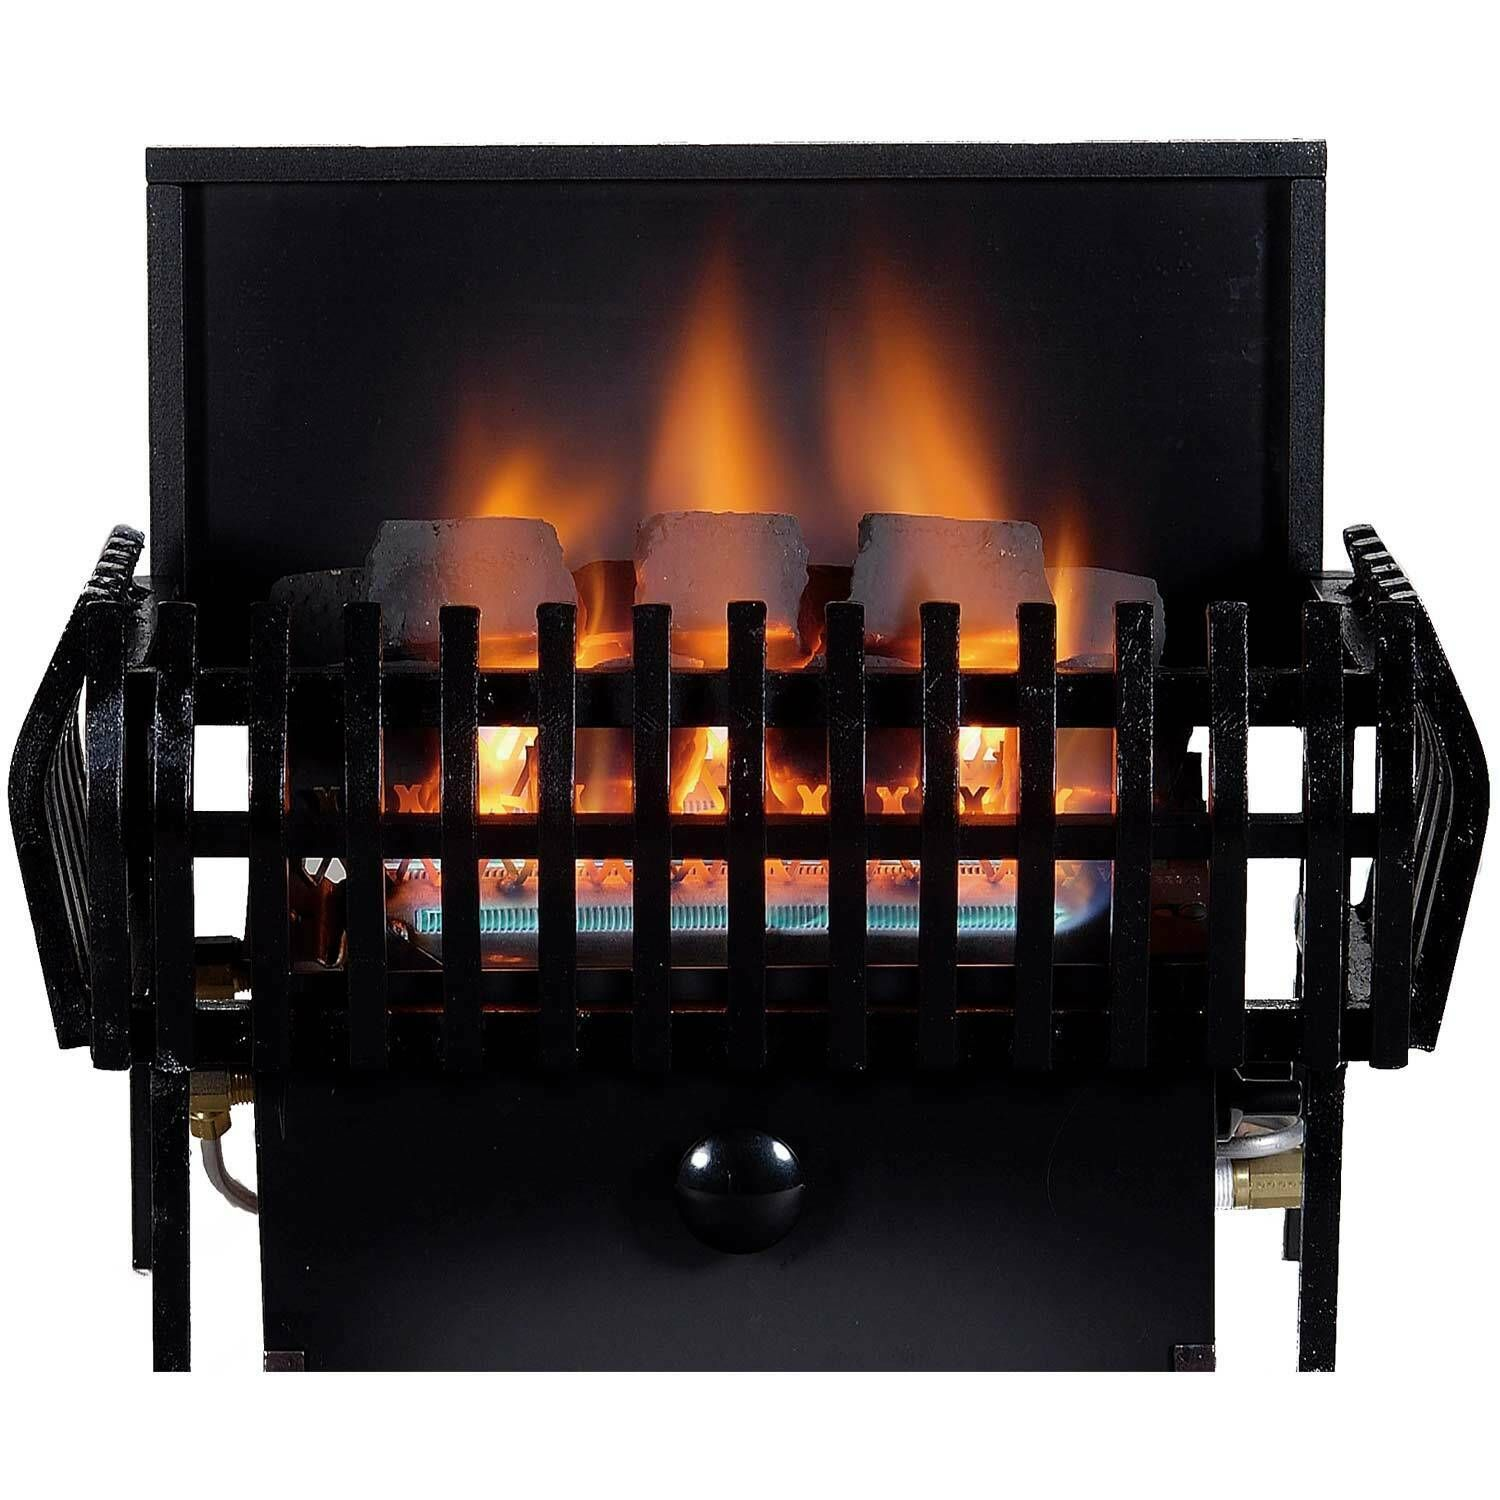 Rasmussen Coalfire Small Classic Basket Vent Free Fireplace Heater Manual Safet Ebay Fireplace Heater Gas Log Sets Vent Free Gas Fireplace